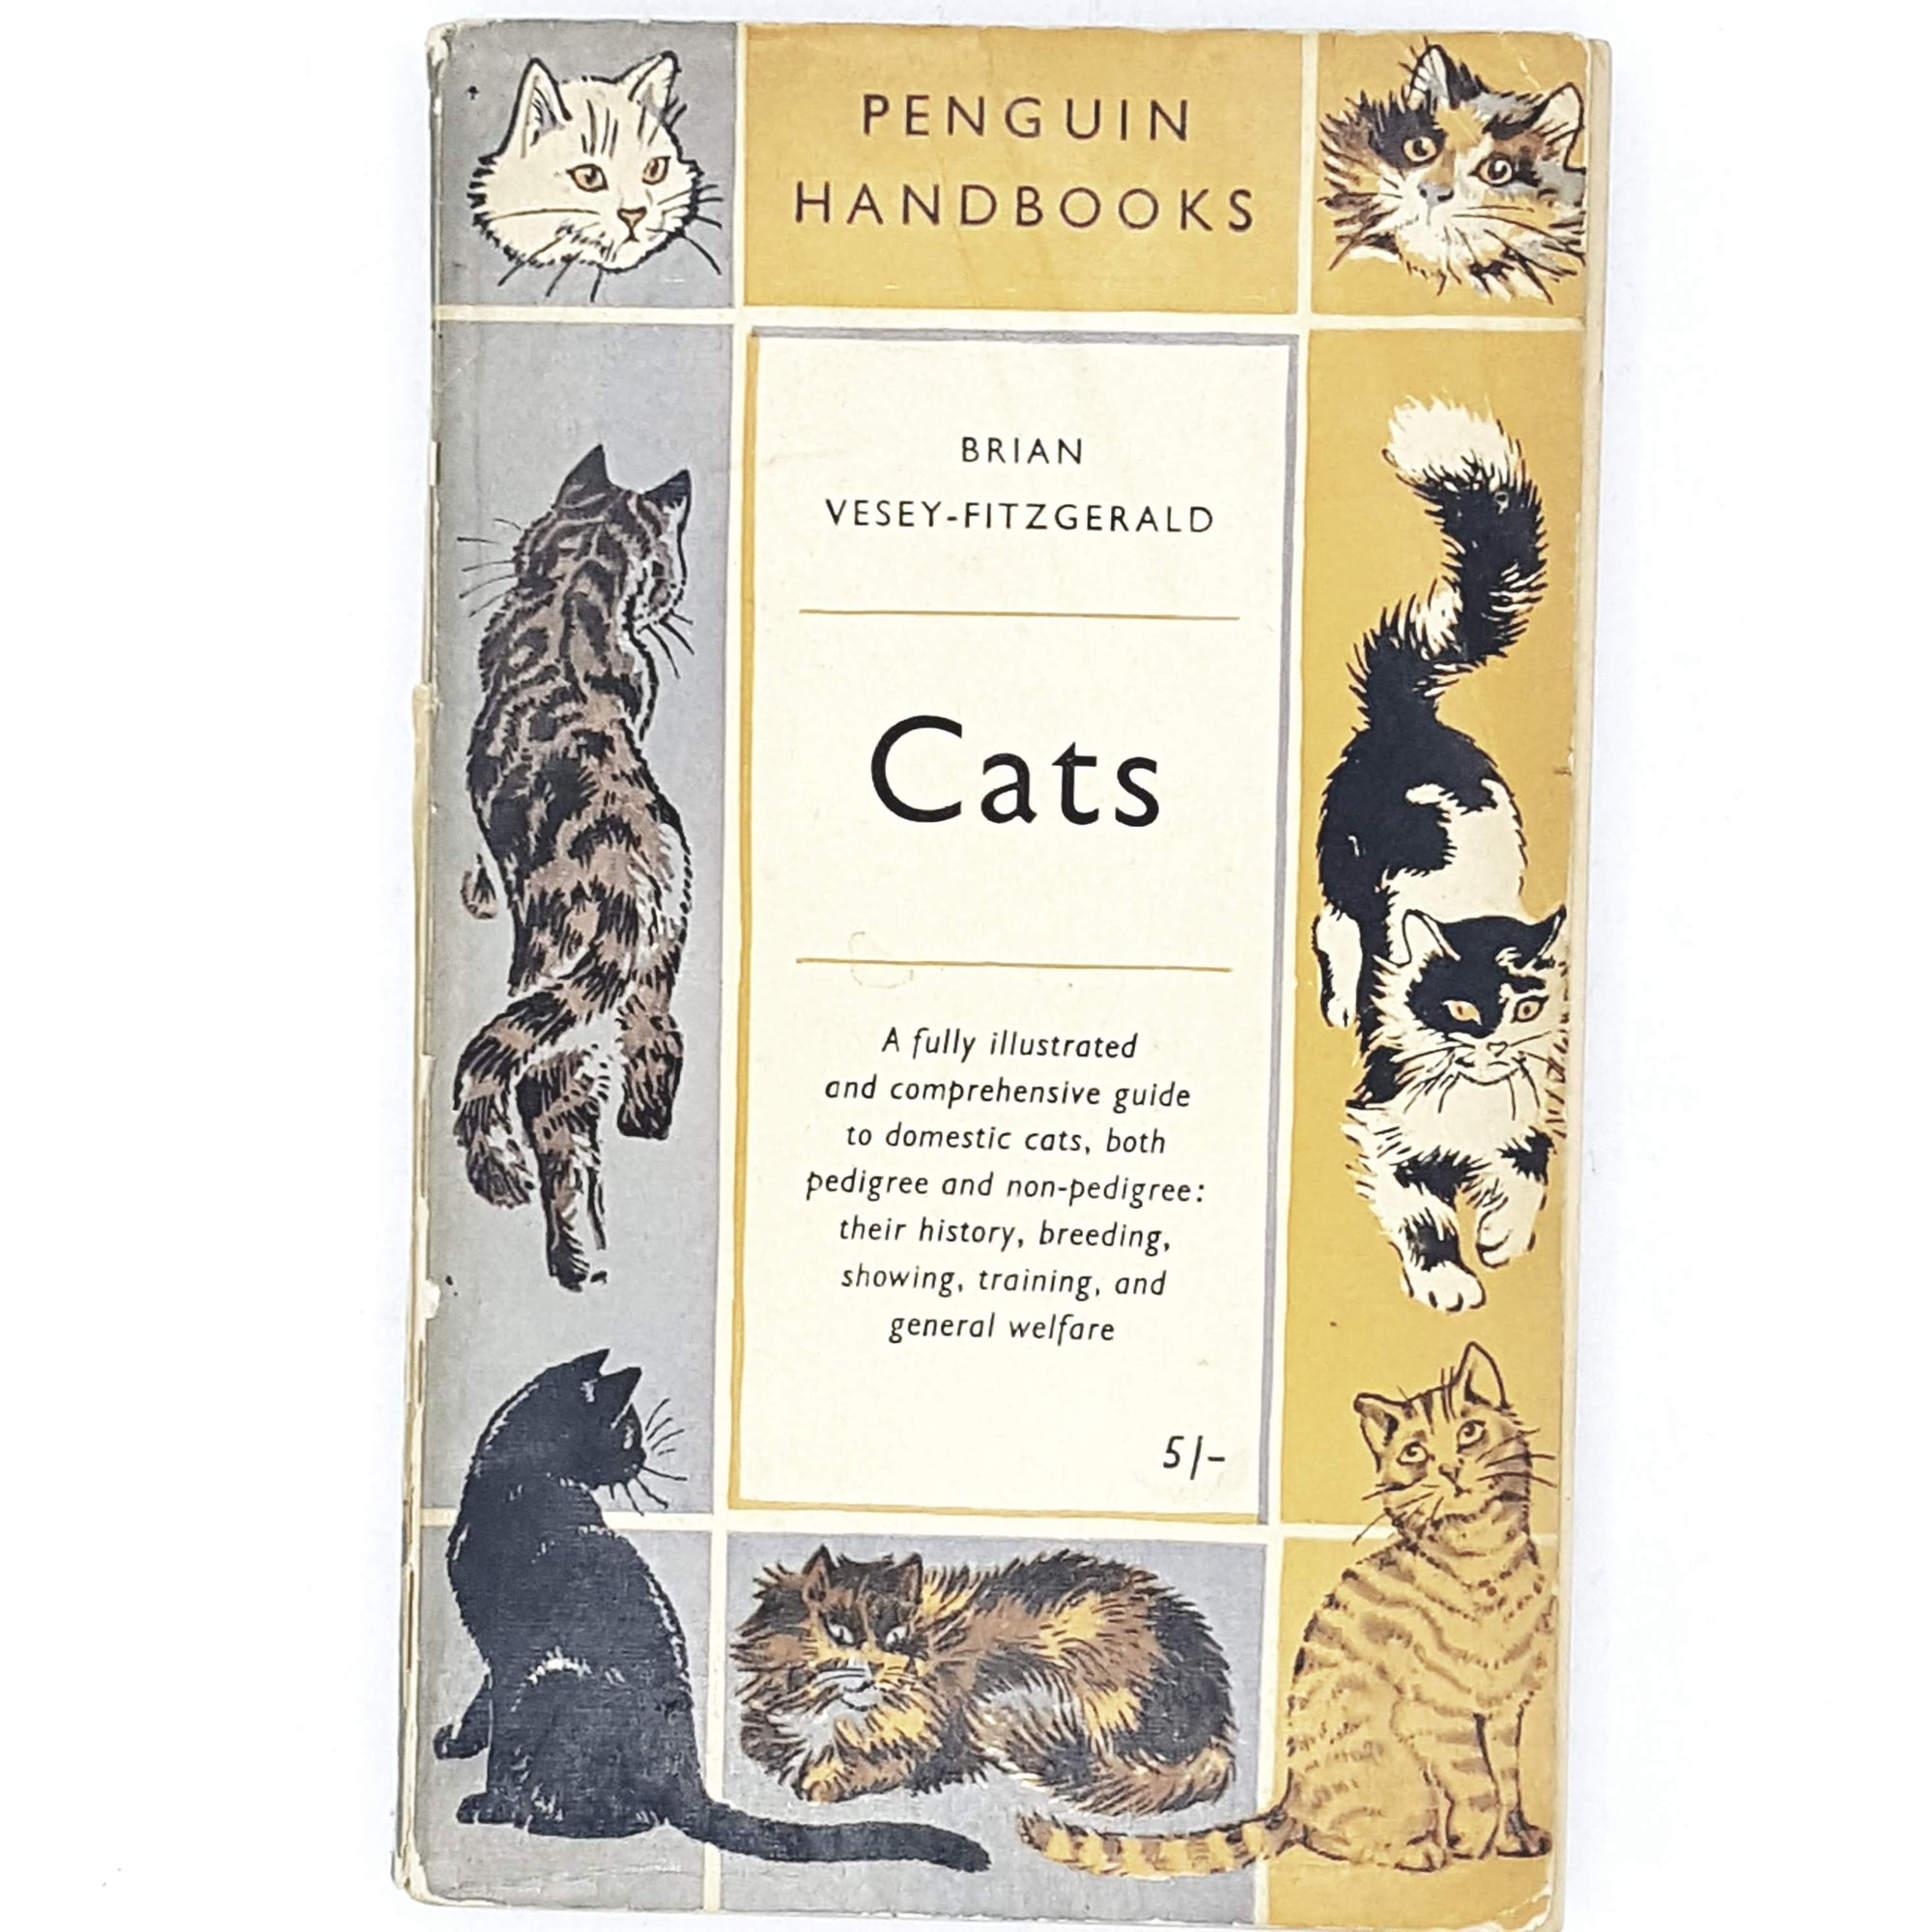 First Edition Penguin Handbook: Cats 1957